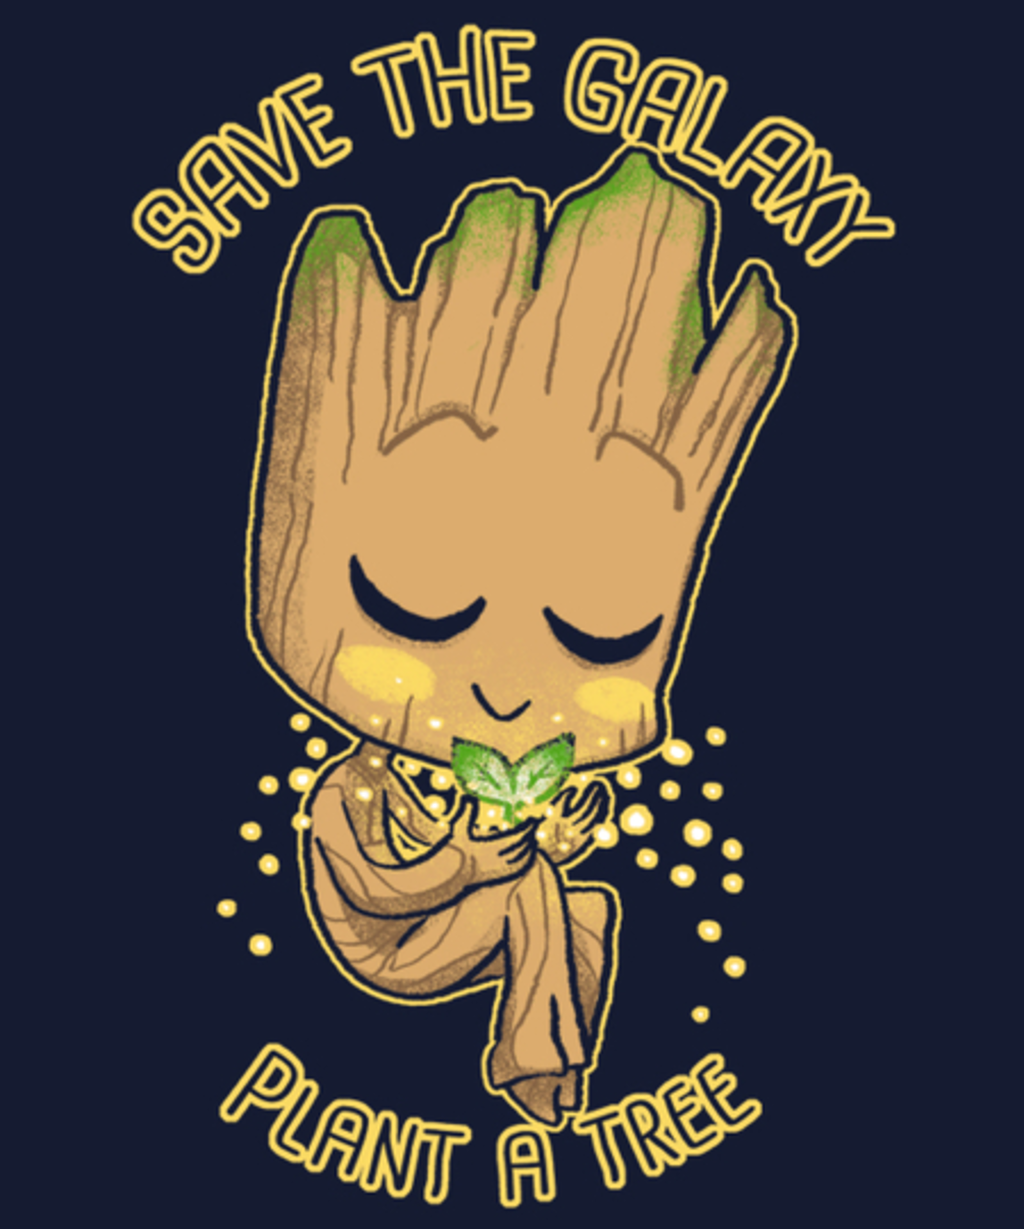 Qwertee: Save the Galaxy Plant a Tree